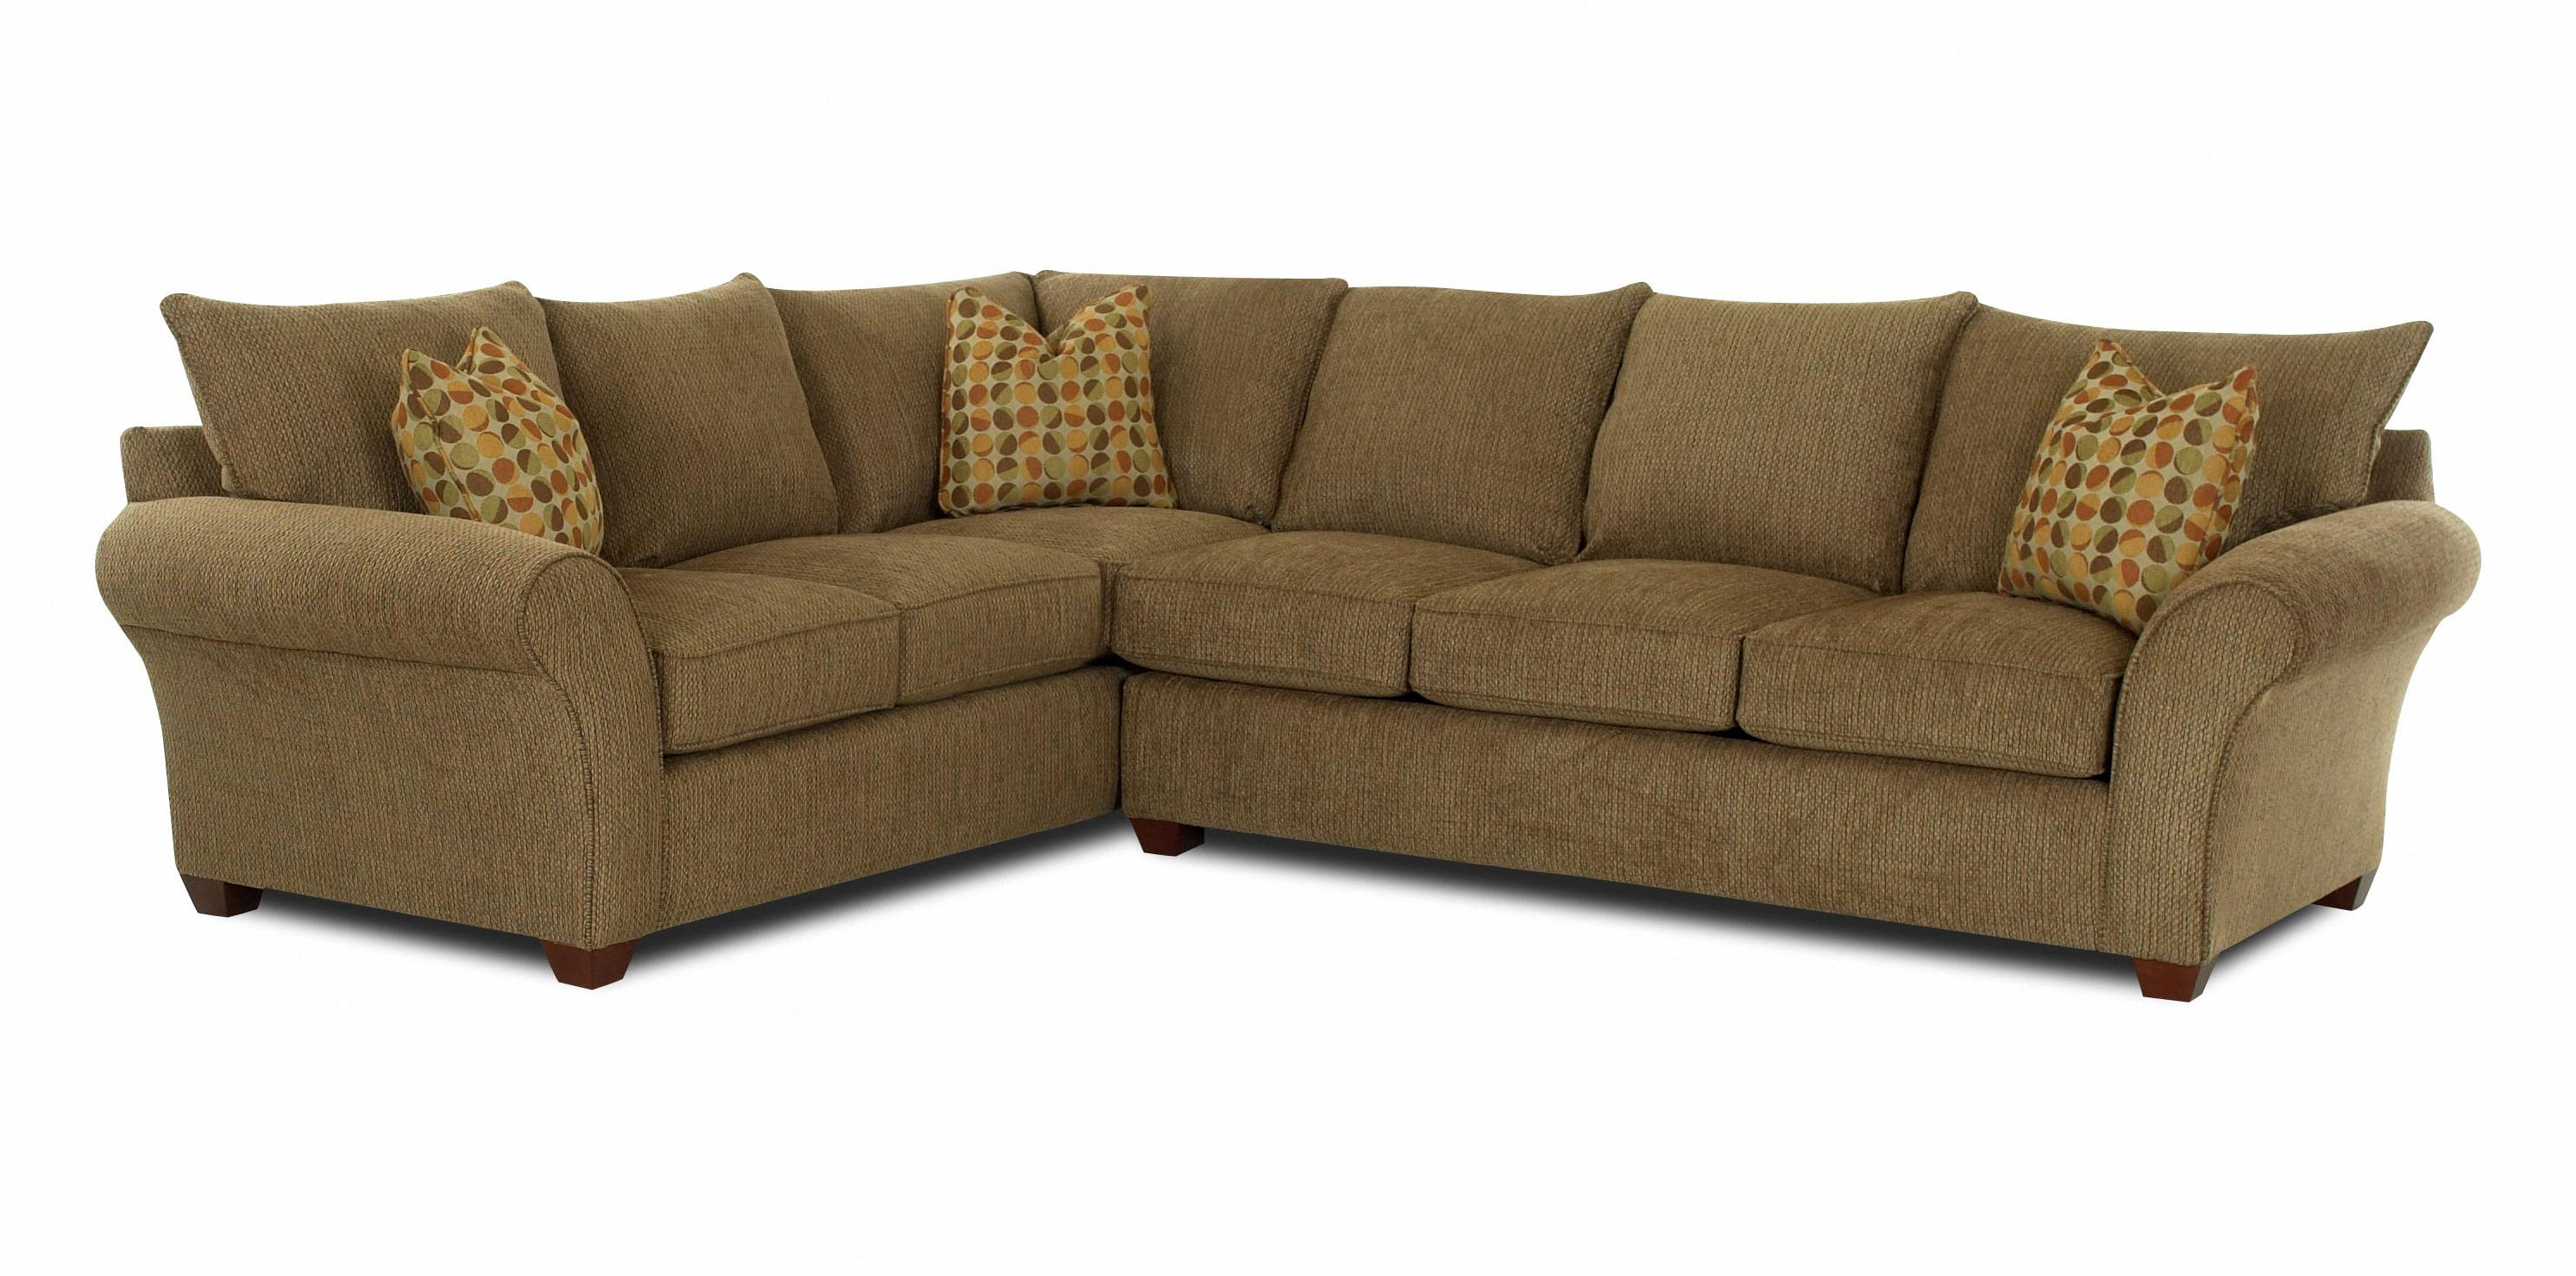 Fletcher Transitional 2 Piece Sectional Sofa by Klaussner at Northeast Factory Direct